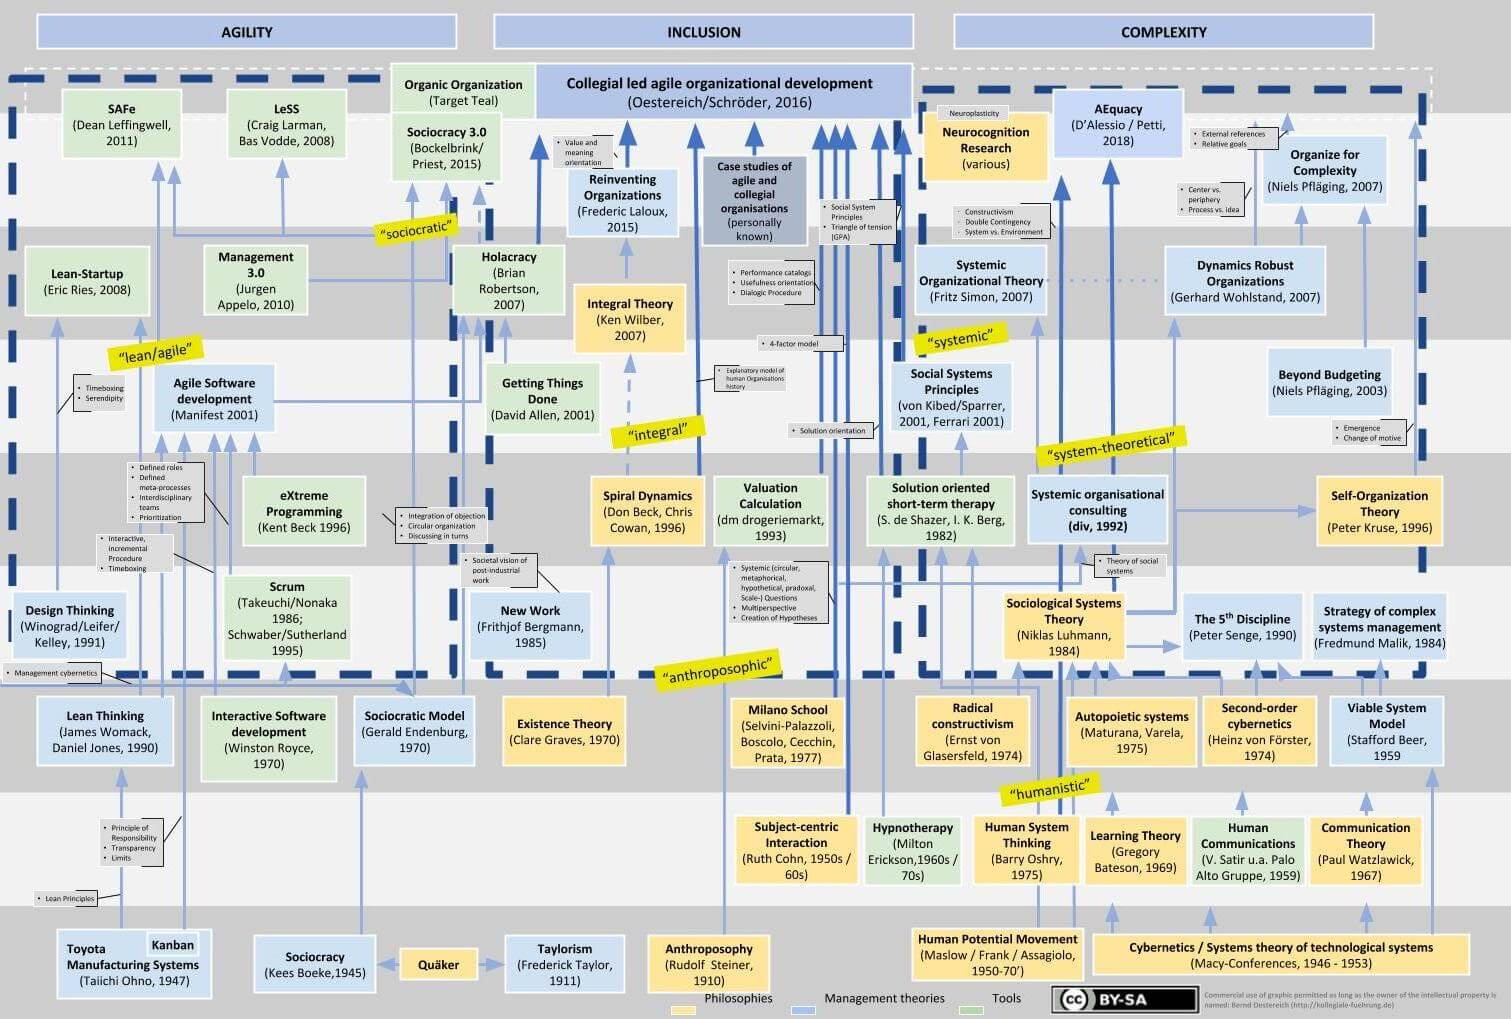 Cartography of responsive organization models throughout the year